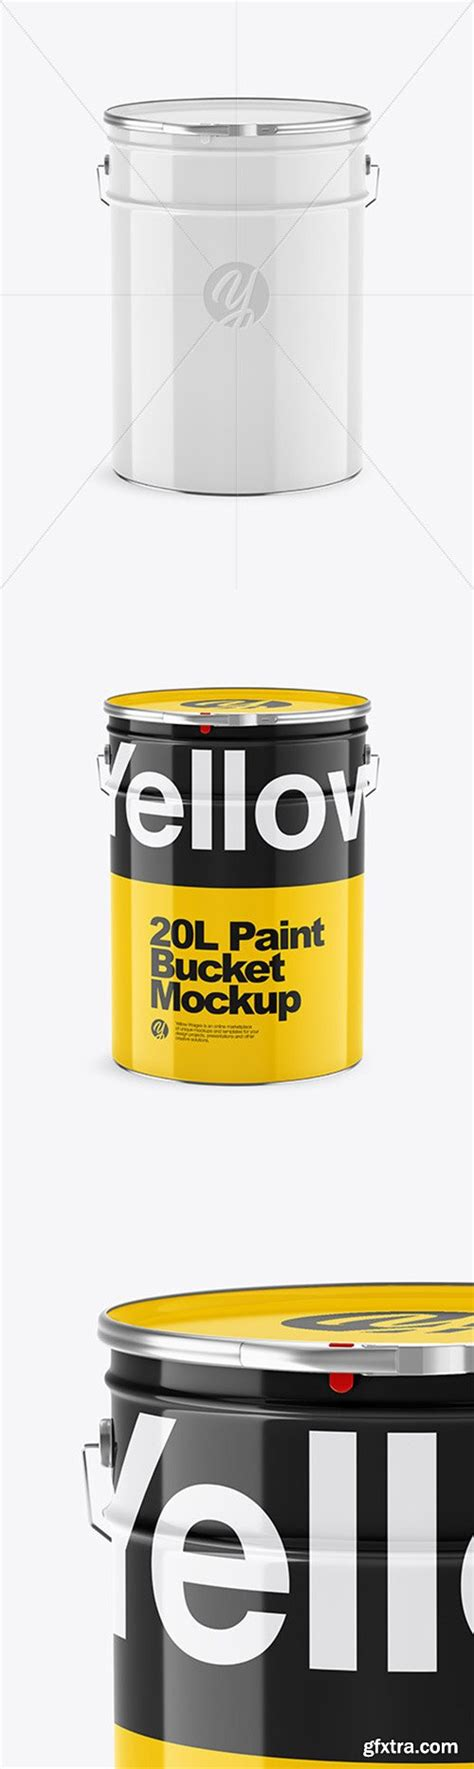 Take a glance how your design looks on this tin paint bucket. 20L Glossy Paint Bucket Mockup 65166 » GFxtra